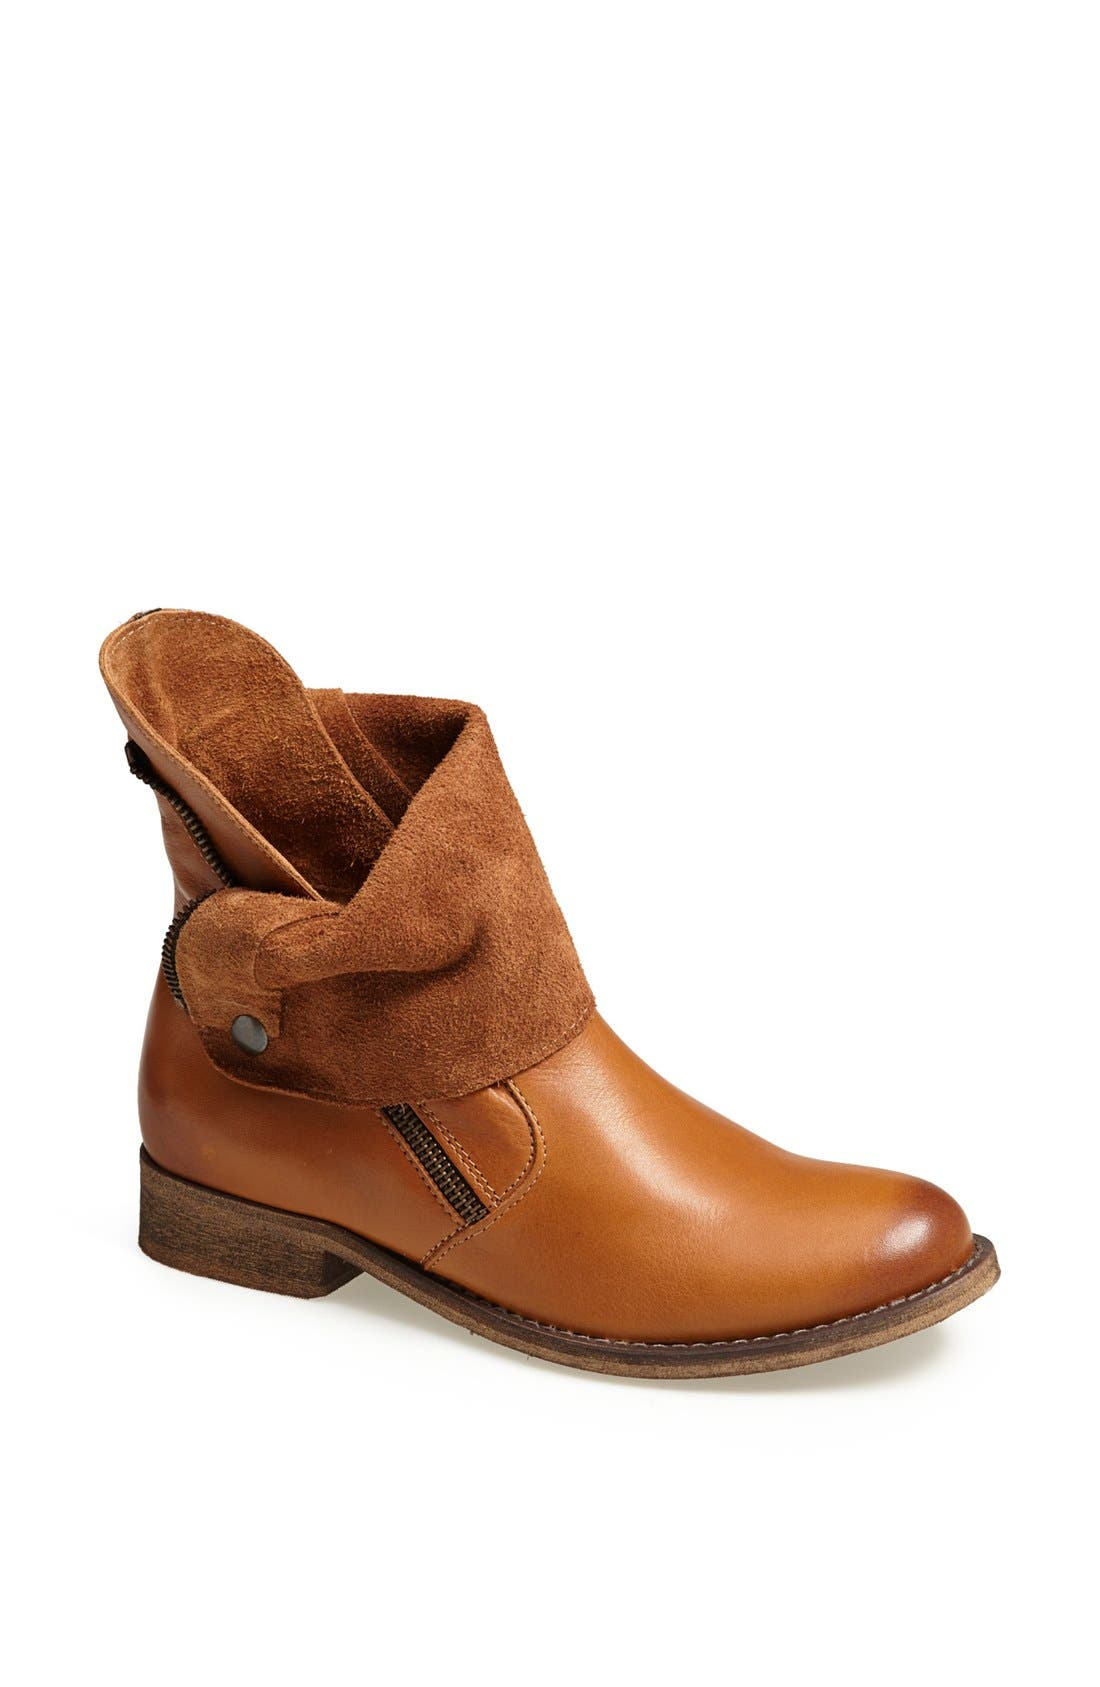 Alternate Image 1 Selected - Steve Madden 'Solemate' Leather Bootie